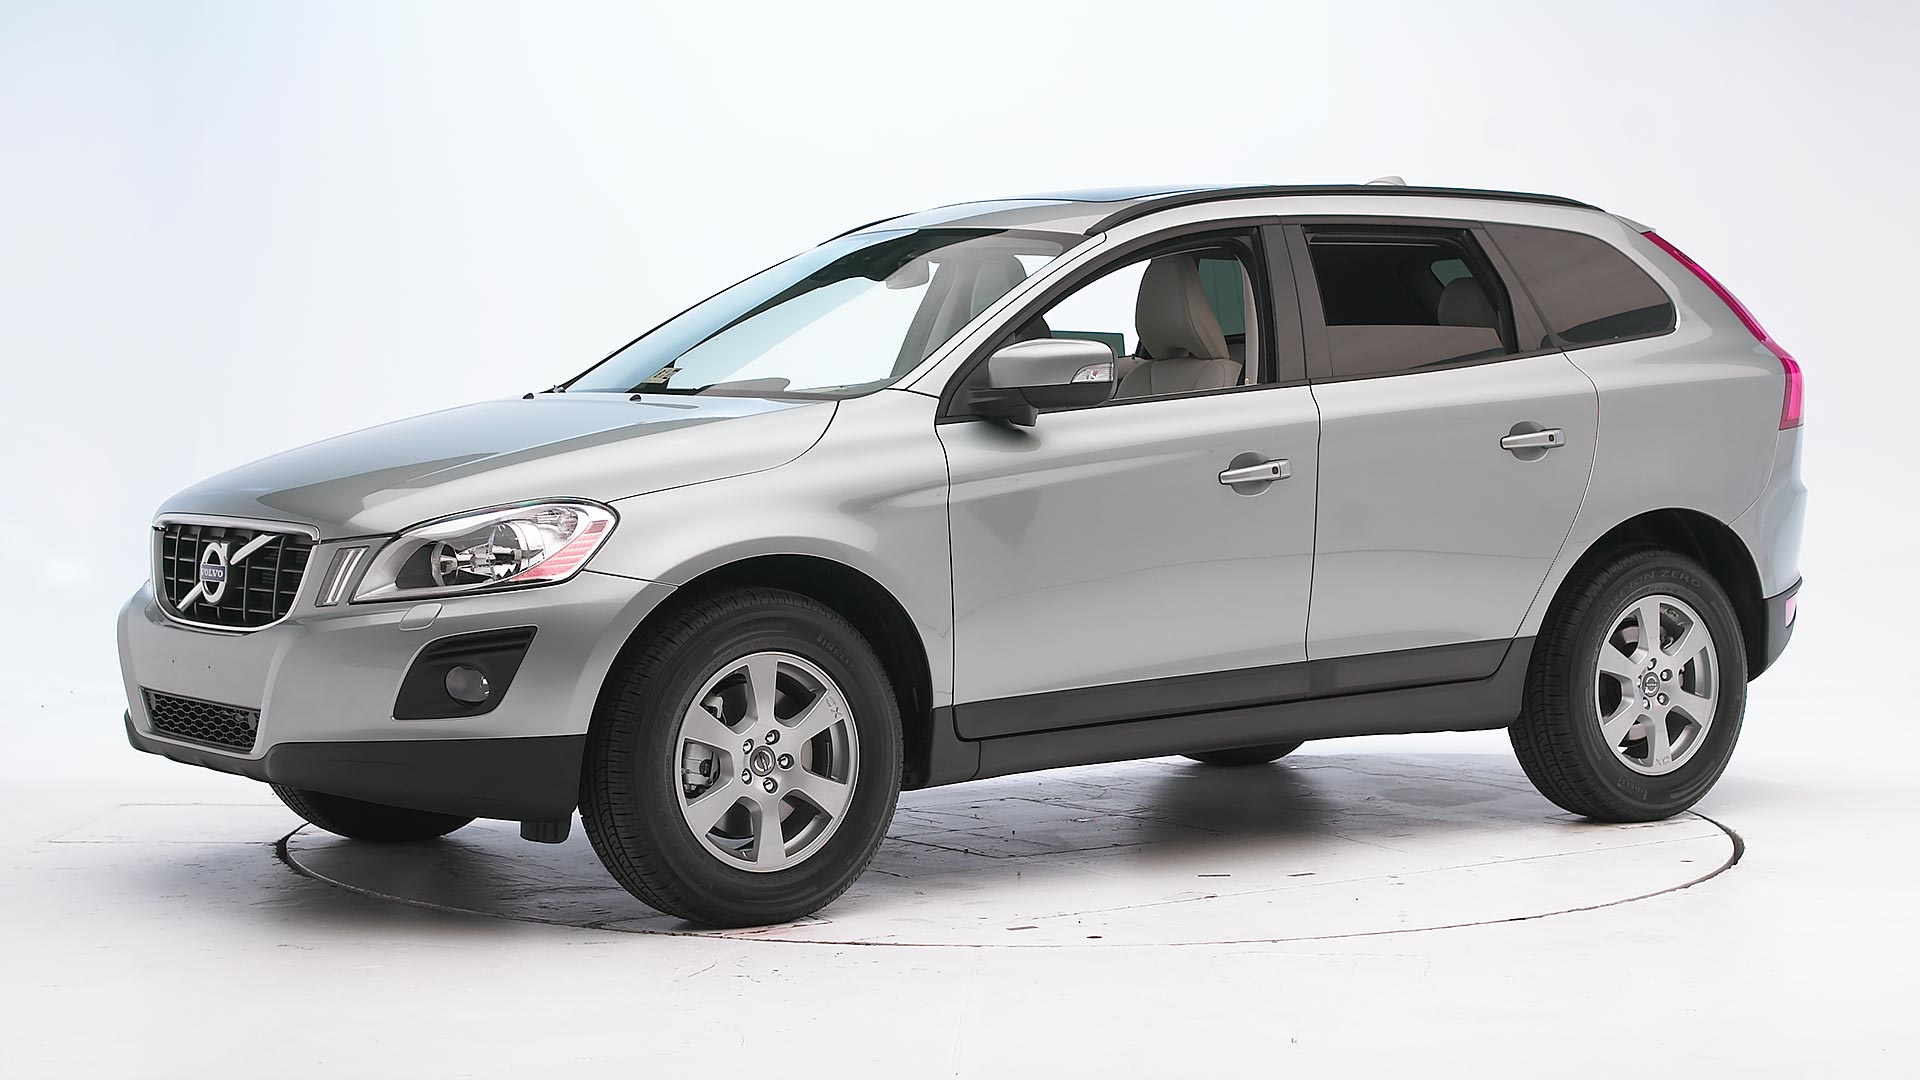 2010 Volvo XC60 4-door SUV